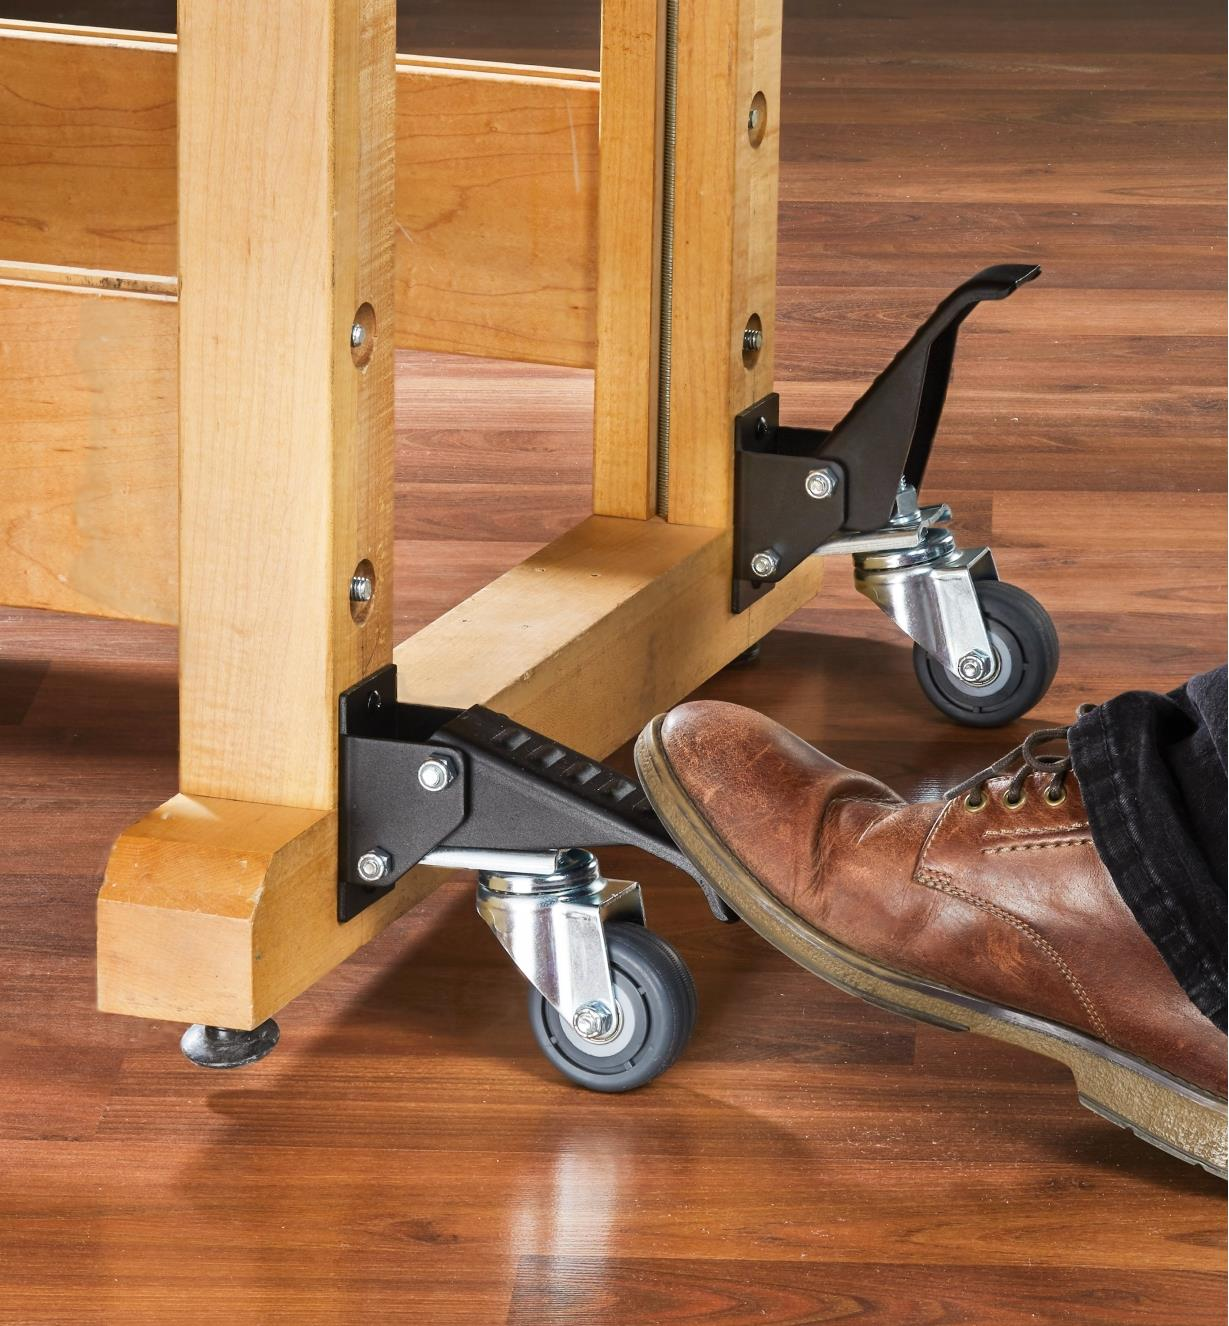 A foot depresses the pedal of a workbench caster, lowering it into position to contact the floor